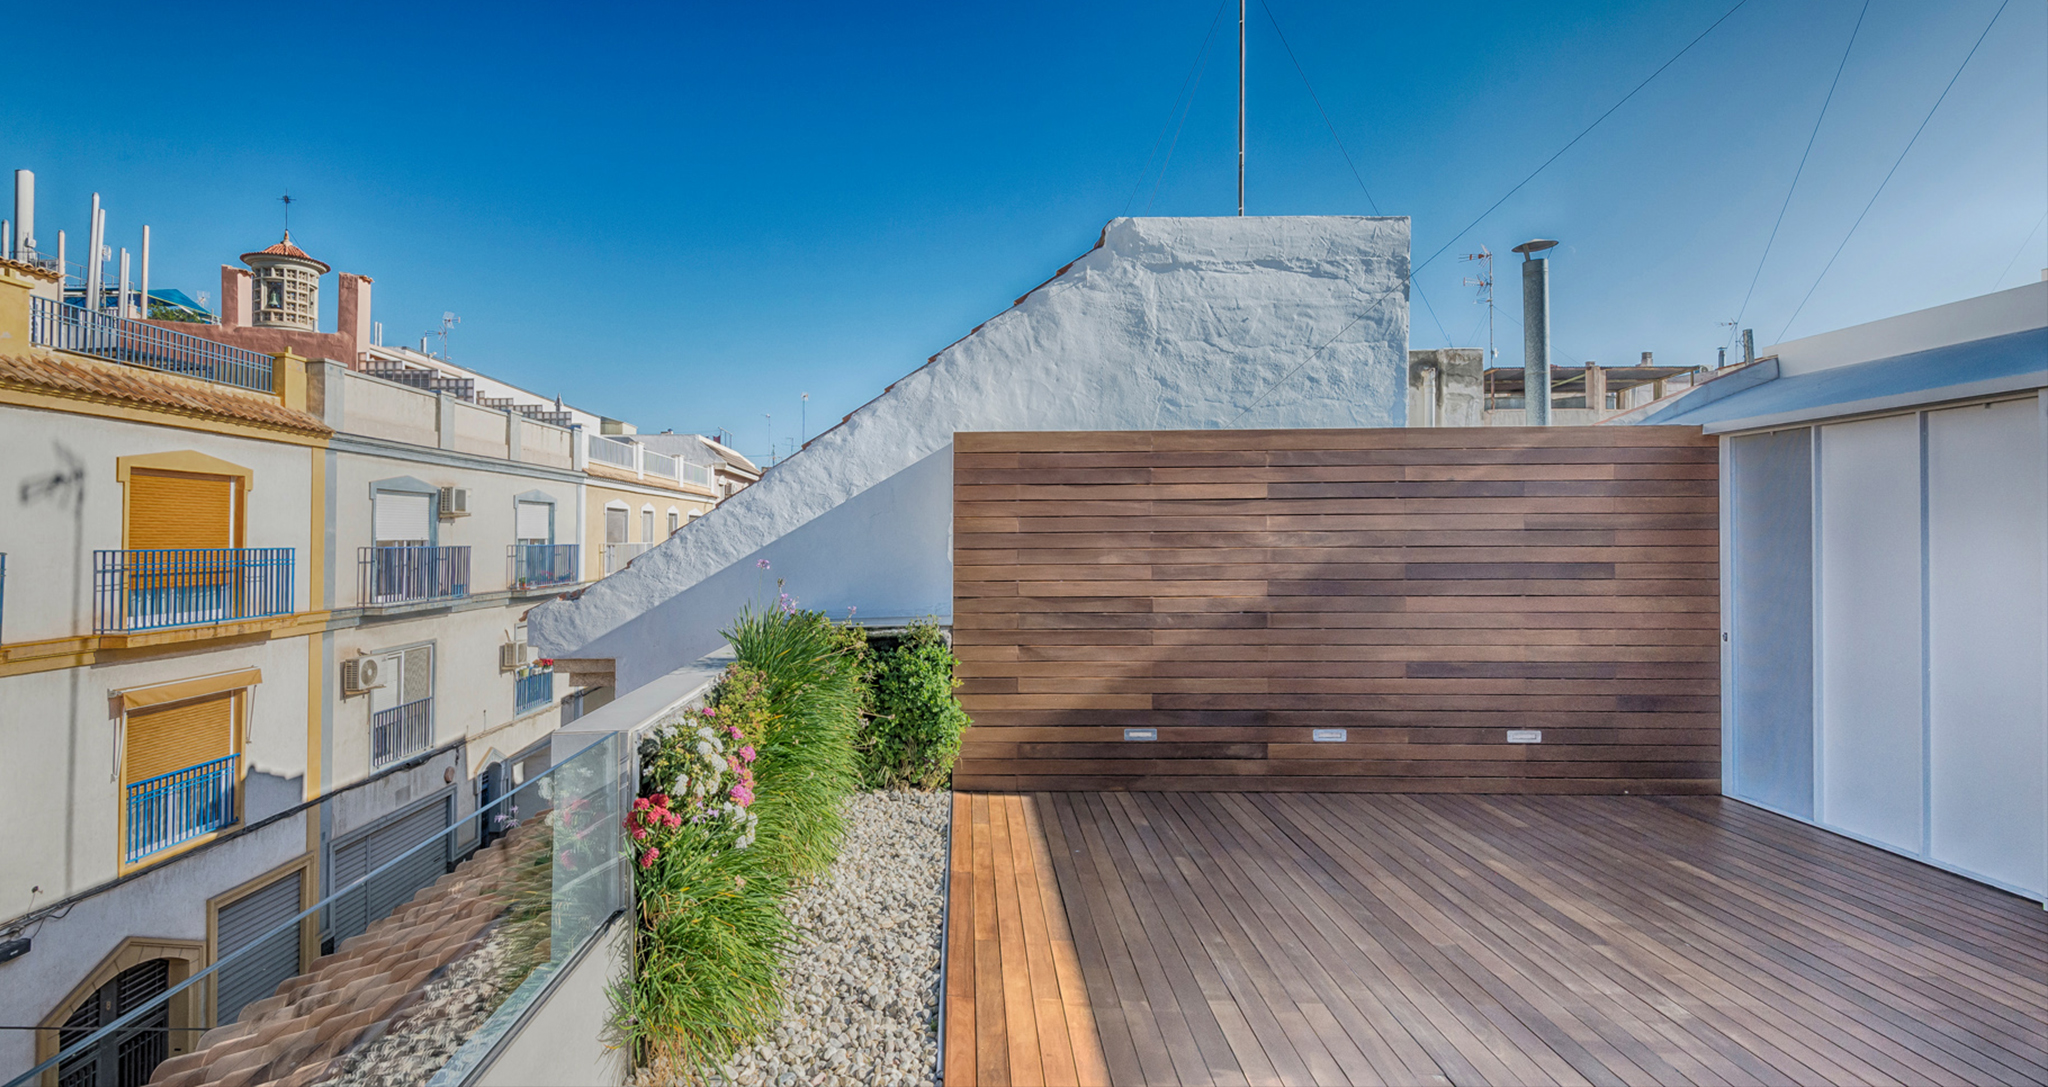 INTEGRAL REFORM OF BUFART HOUSING BY ROCAMORA DESIGN AND ARCHITECTURE, ELCHE, ALICANTE, SPAIN